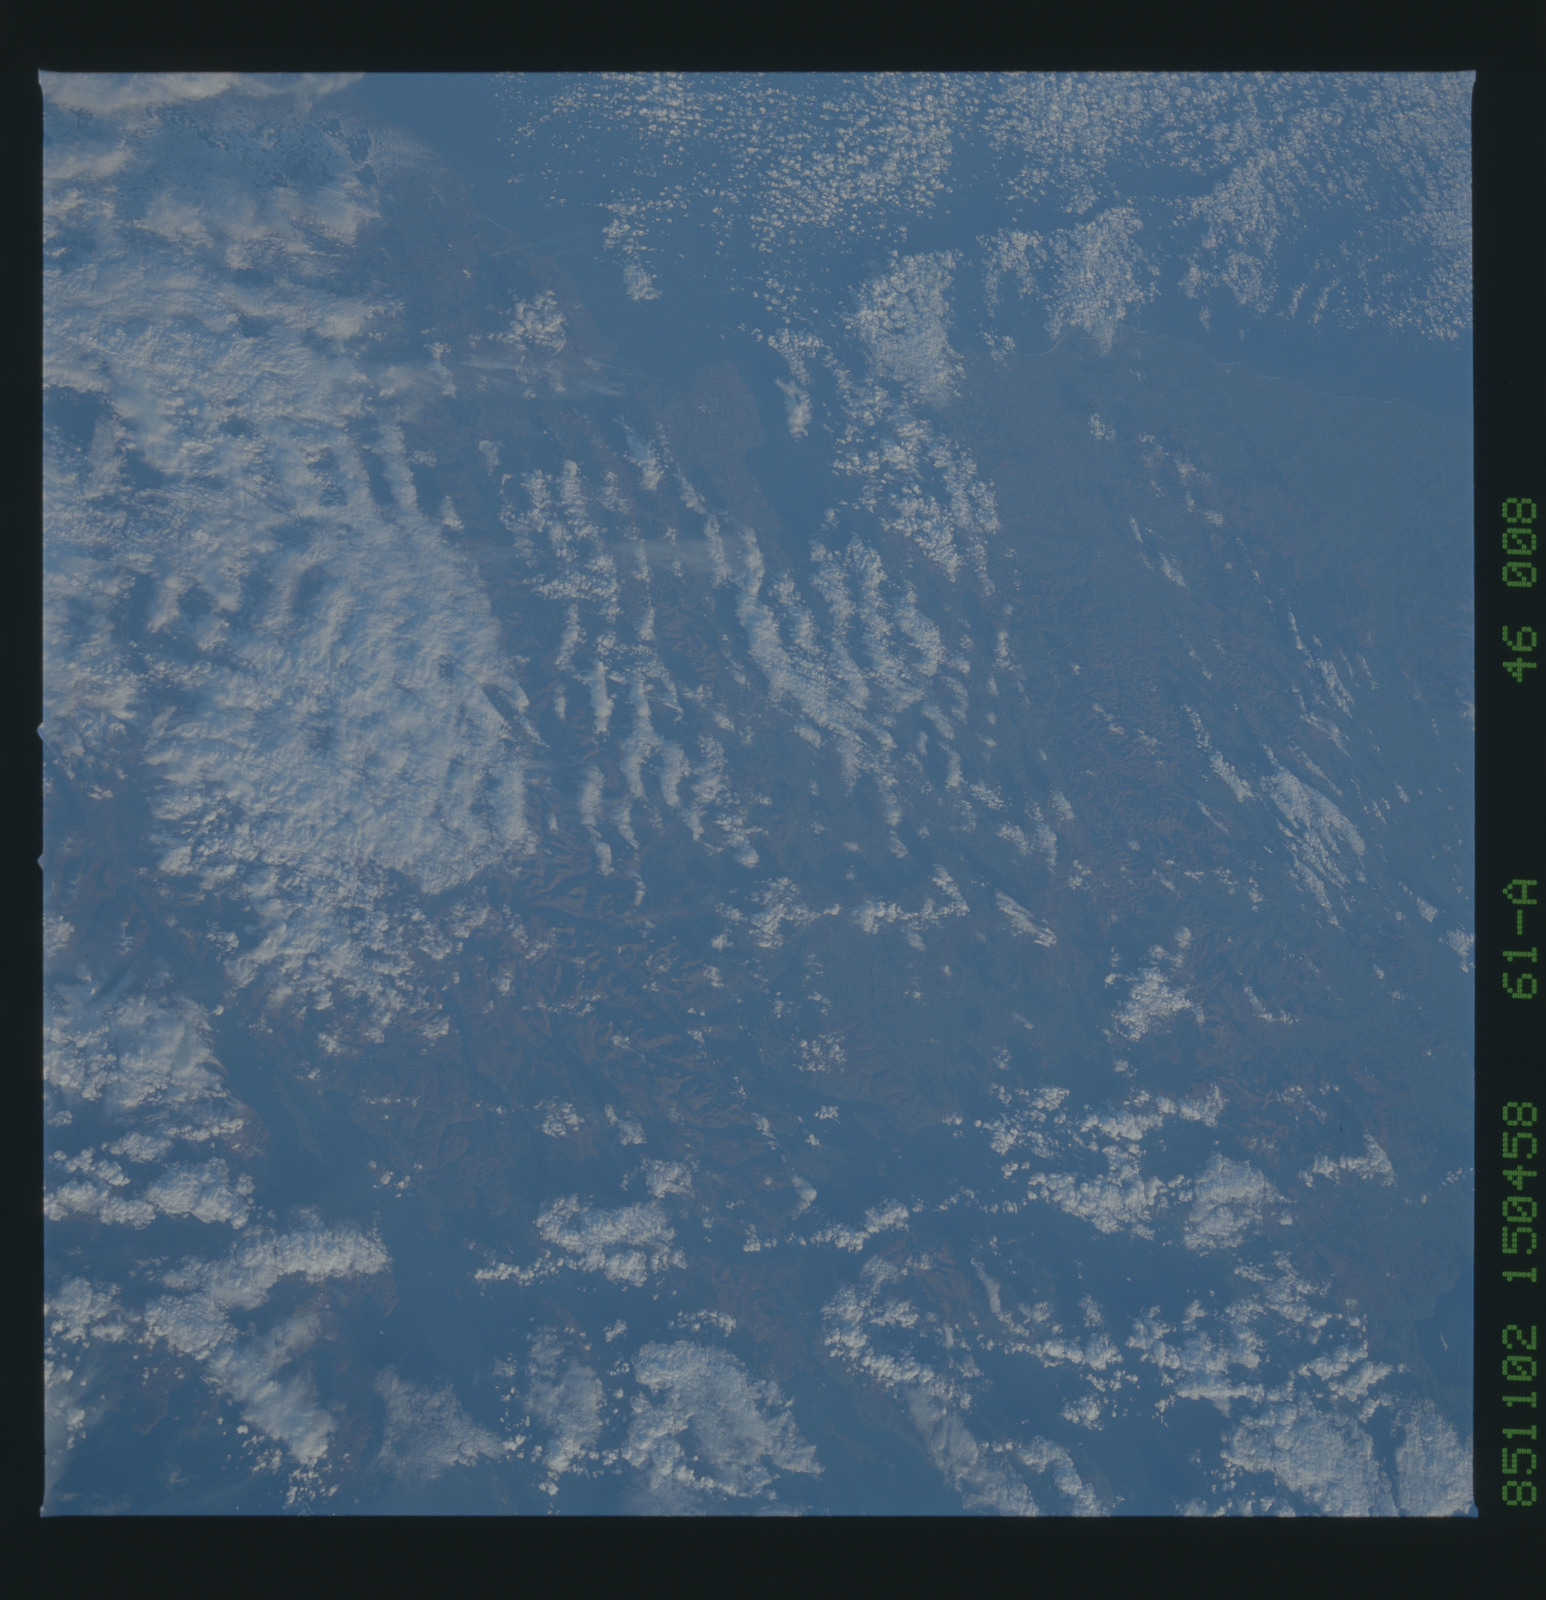 61A-46-008 - STS-61A - STS-61A earth observations